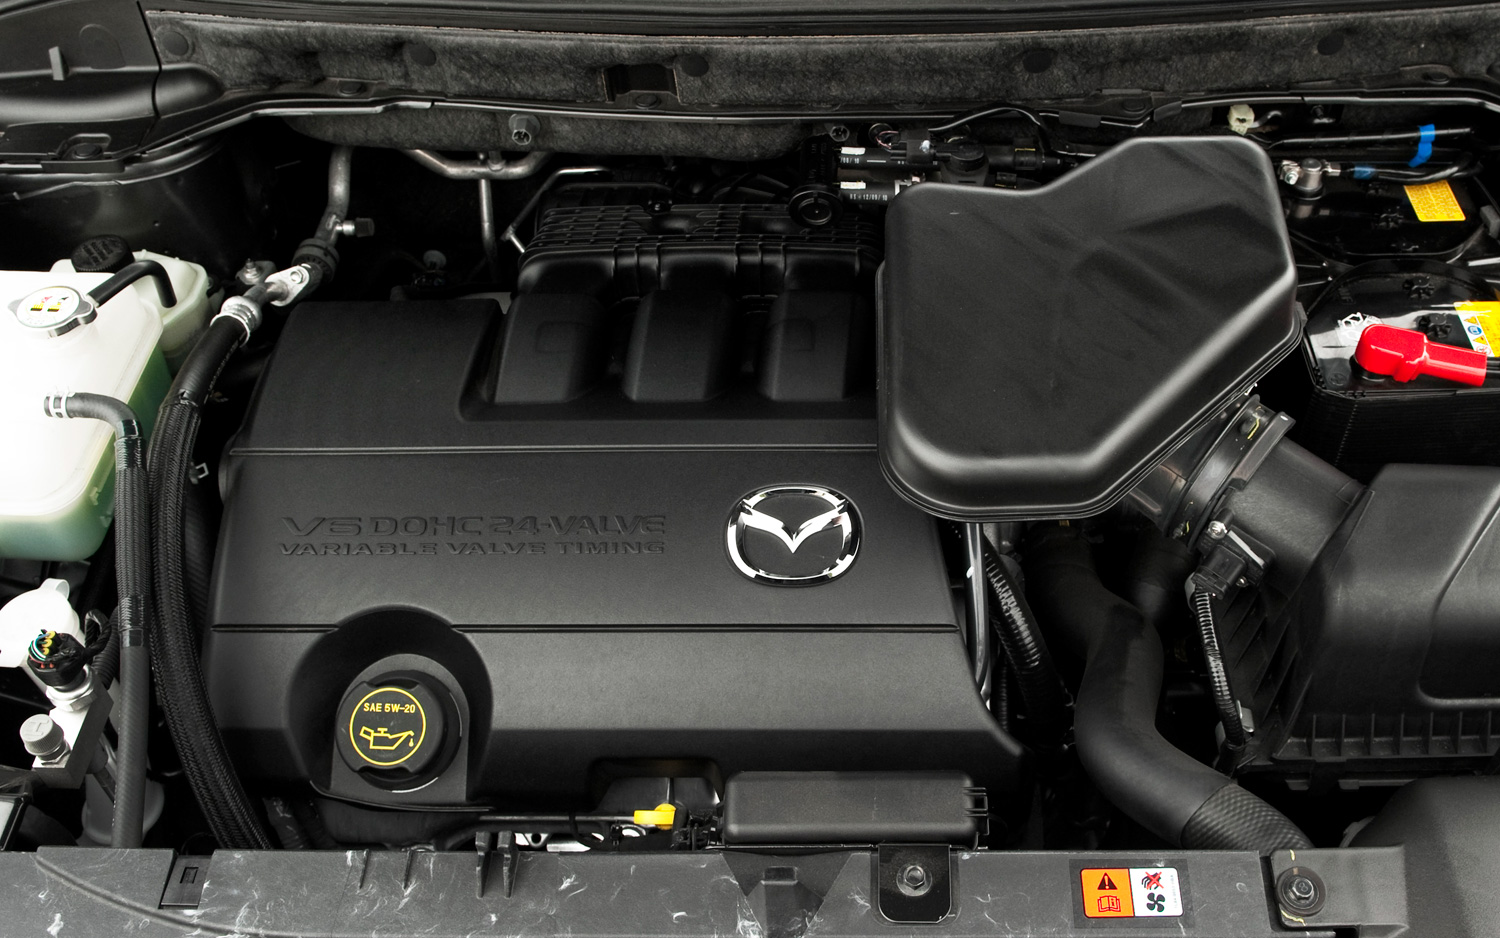 MAZDA CX-9 engine